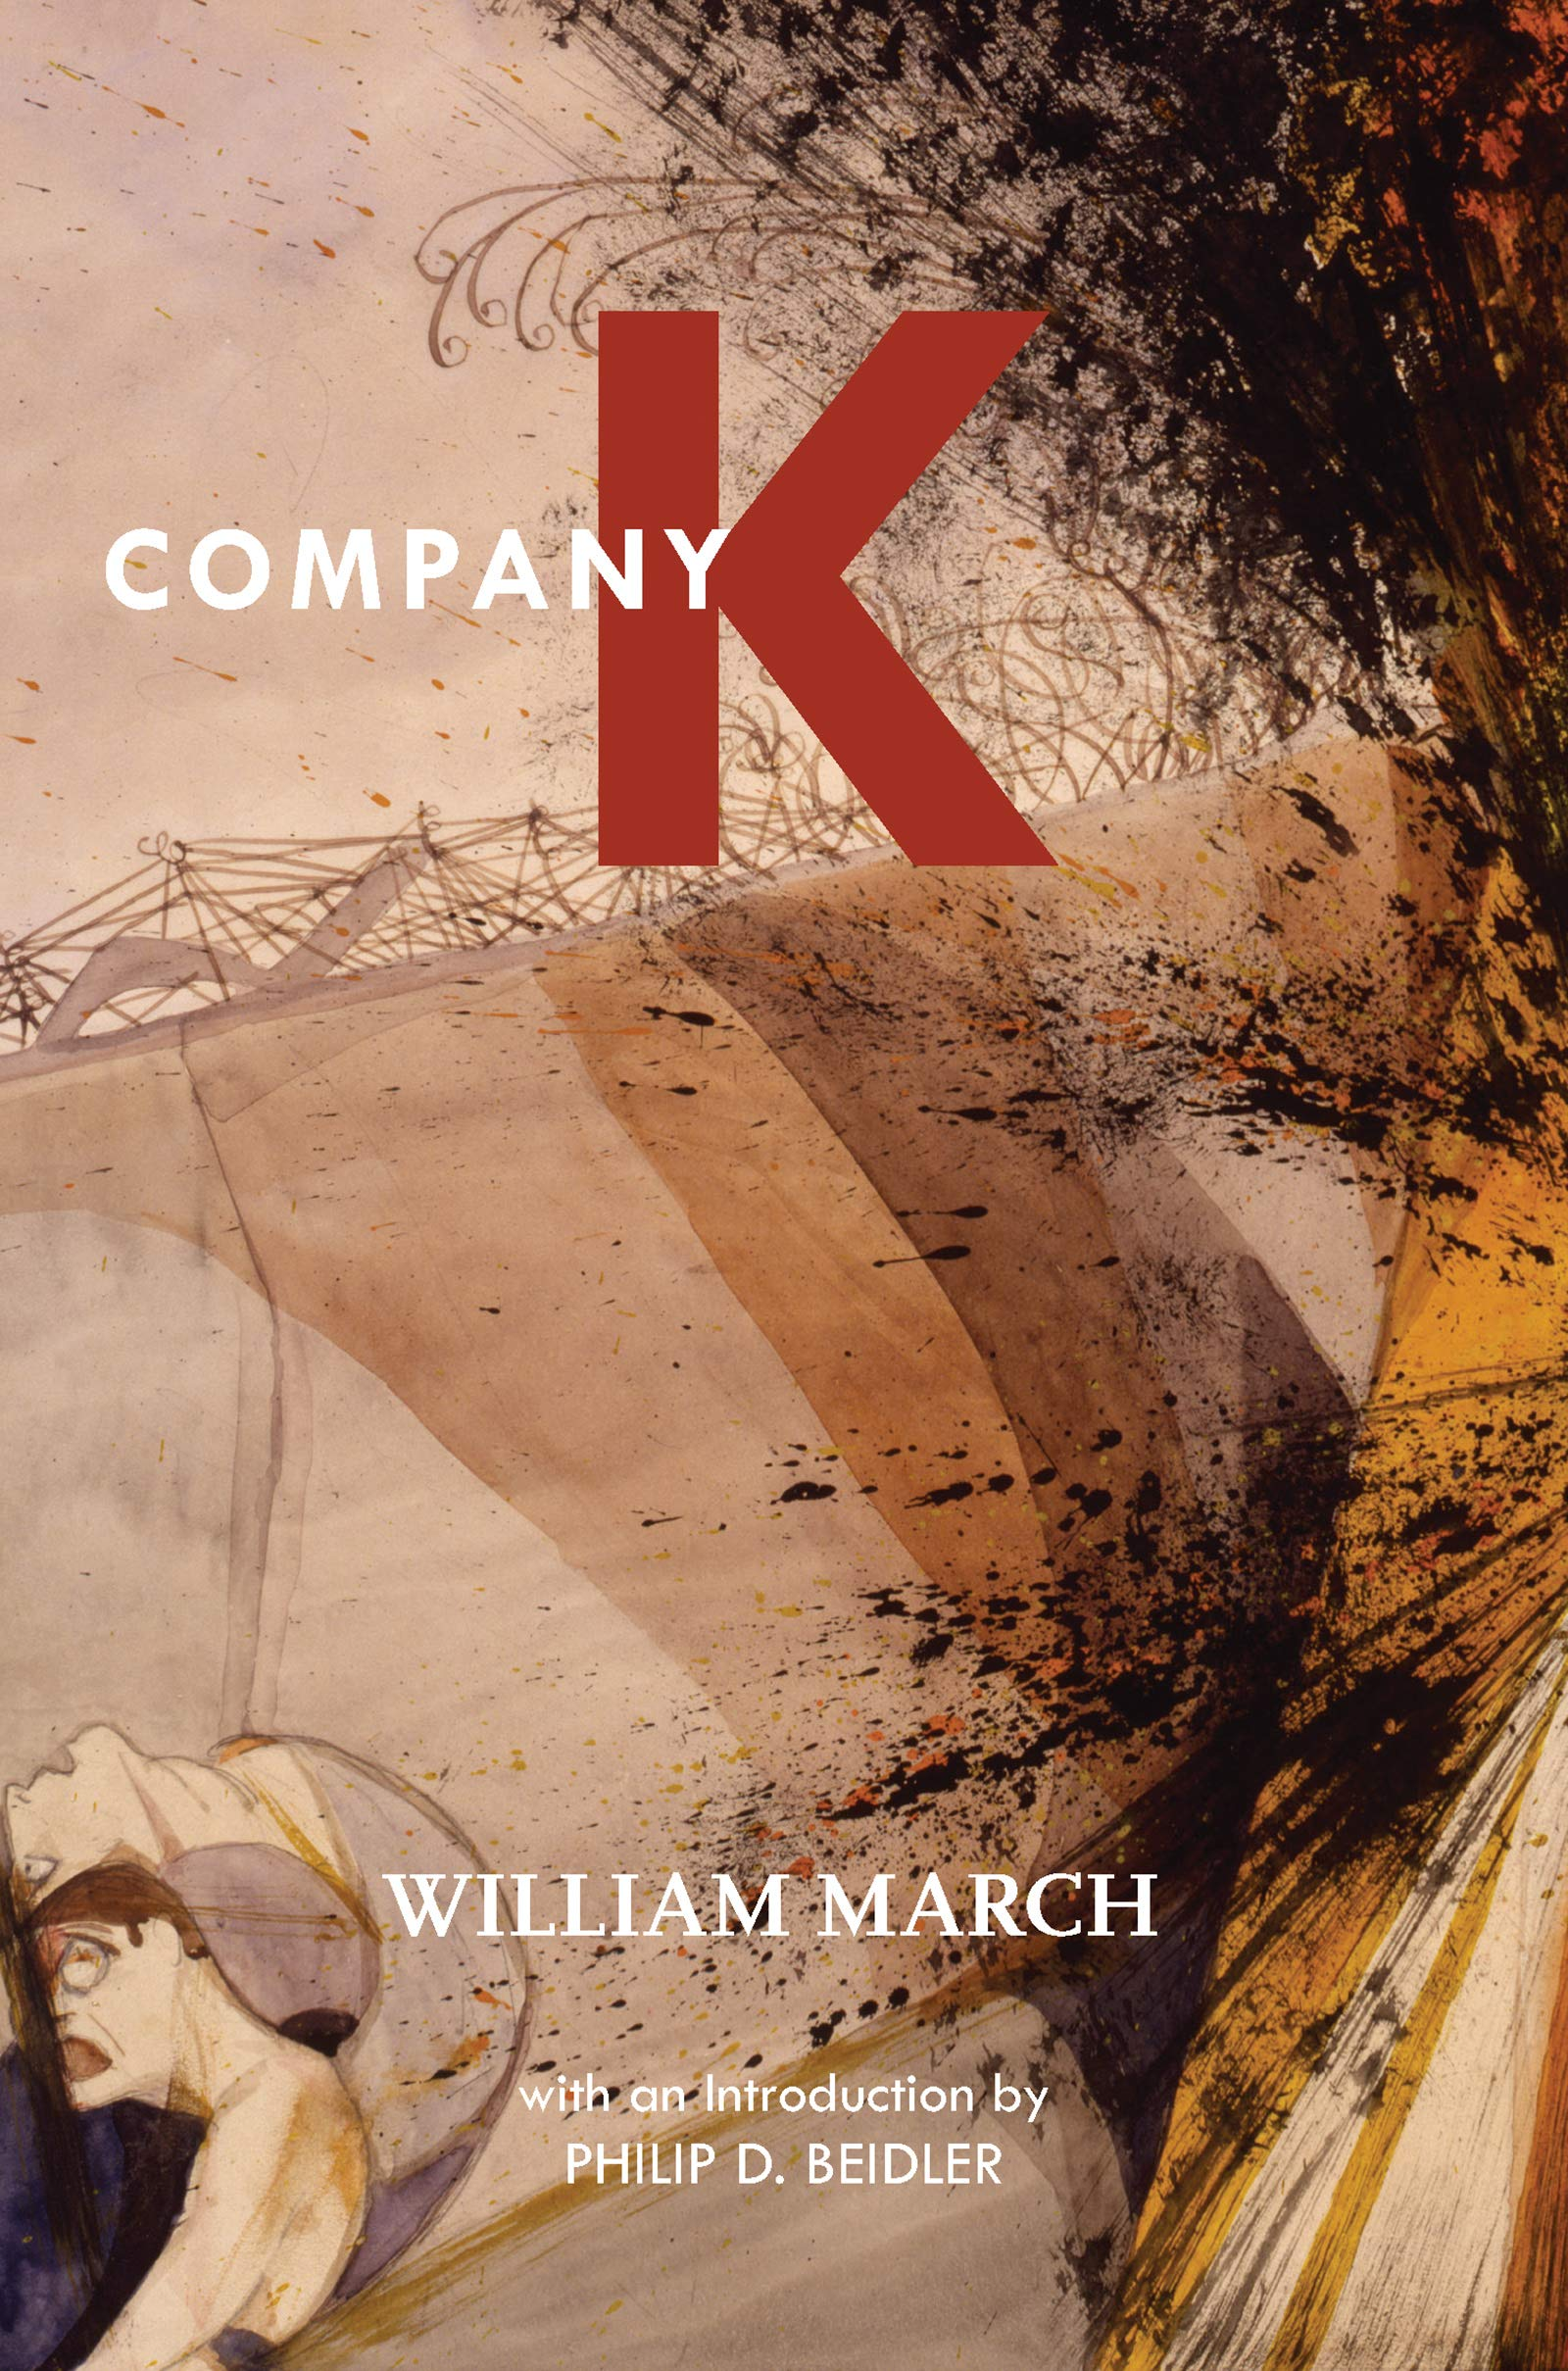 Company K (Library Alabama Classics): William March, Dr. Philip D. Beidler  Ph.D.: 9780817304805: Amazon.com: Books